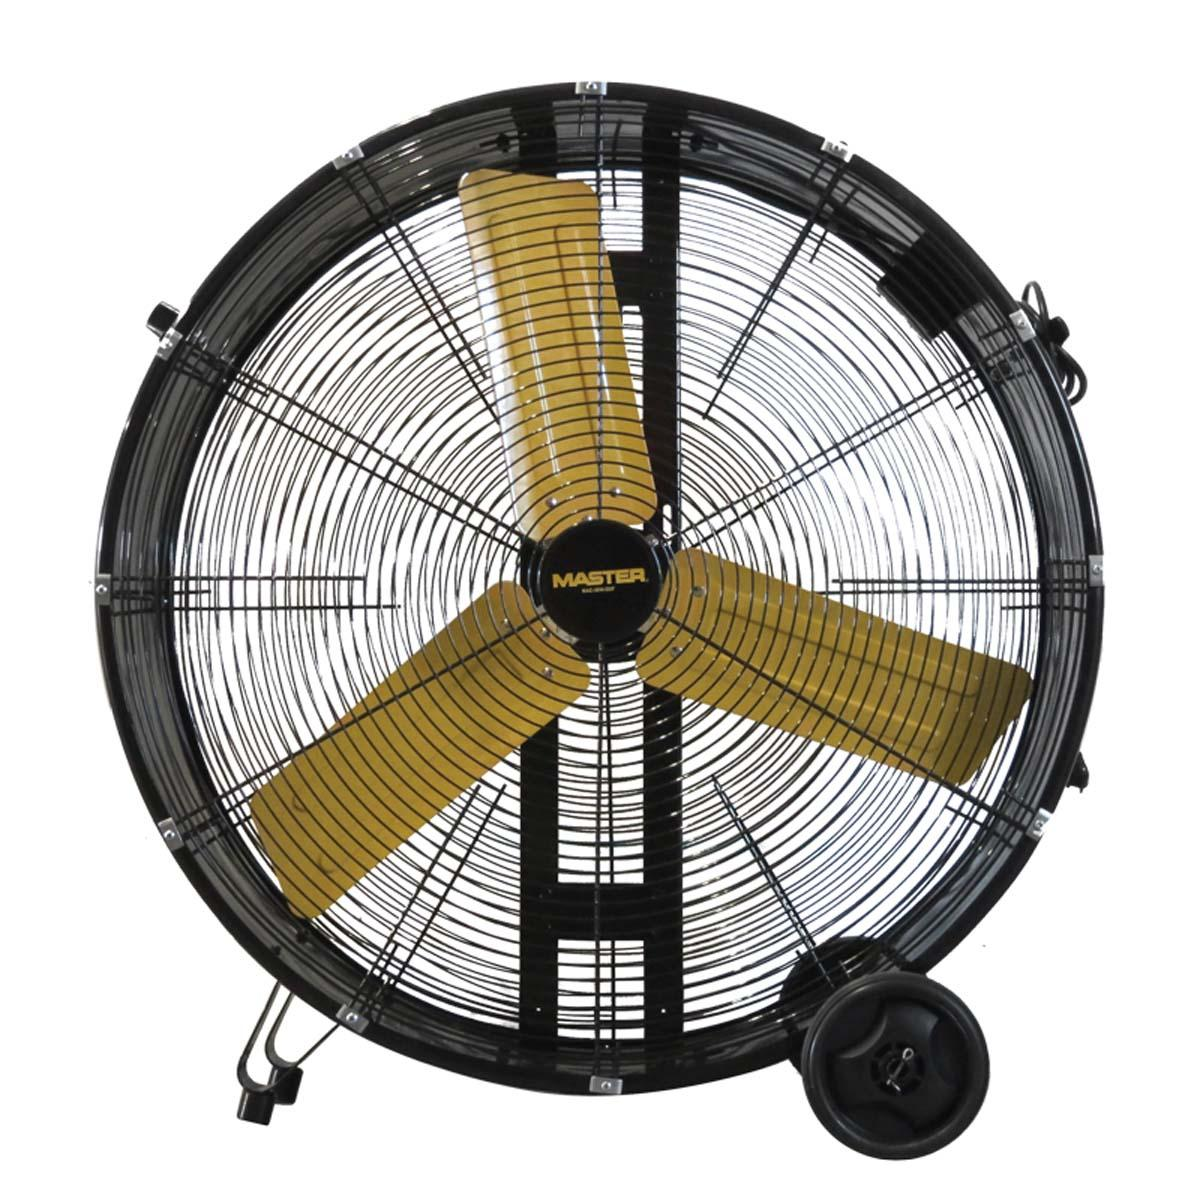 "(MAC-36D) MASTER 36"" High Capacity Direct Drive Drum Fan"